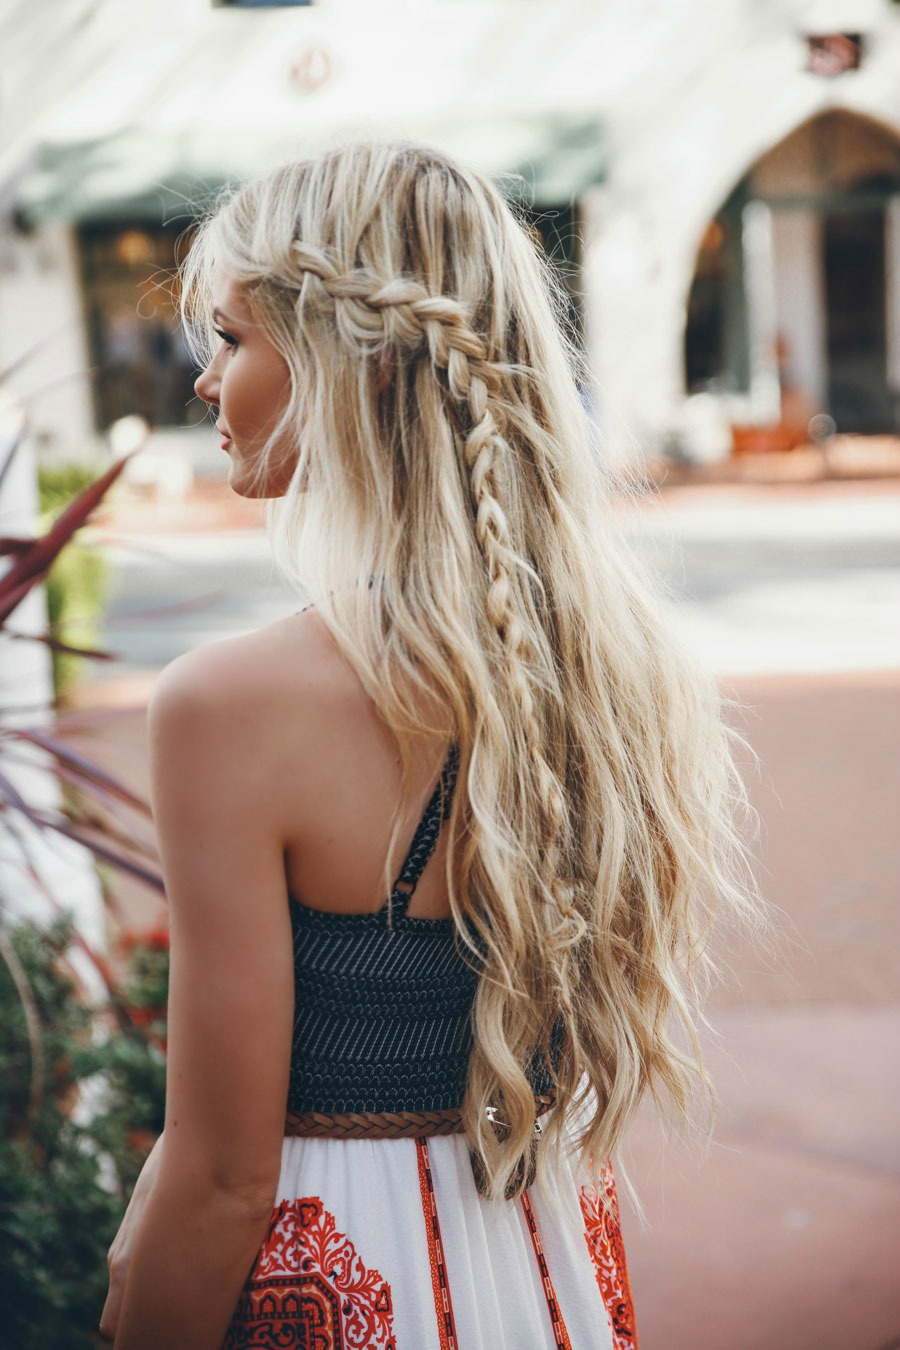 Beach Hair Styles Endearing 15 Gorgeous Beach Hair Ideas For Summer